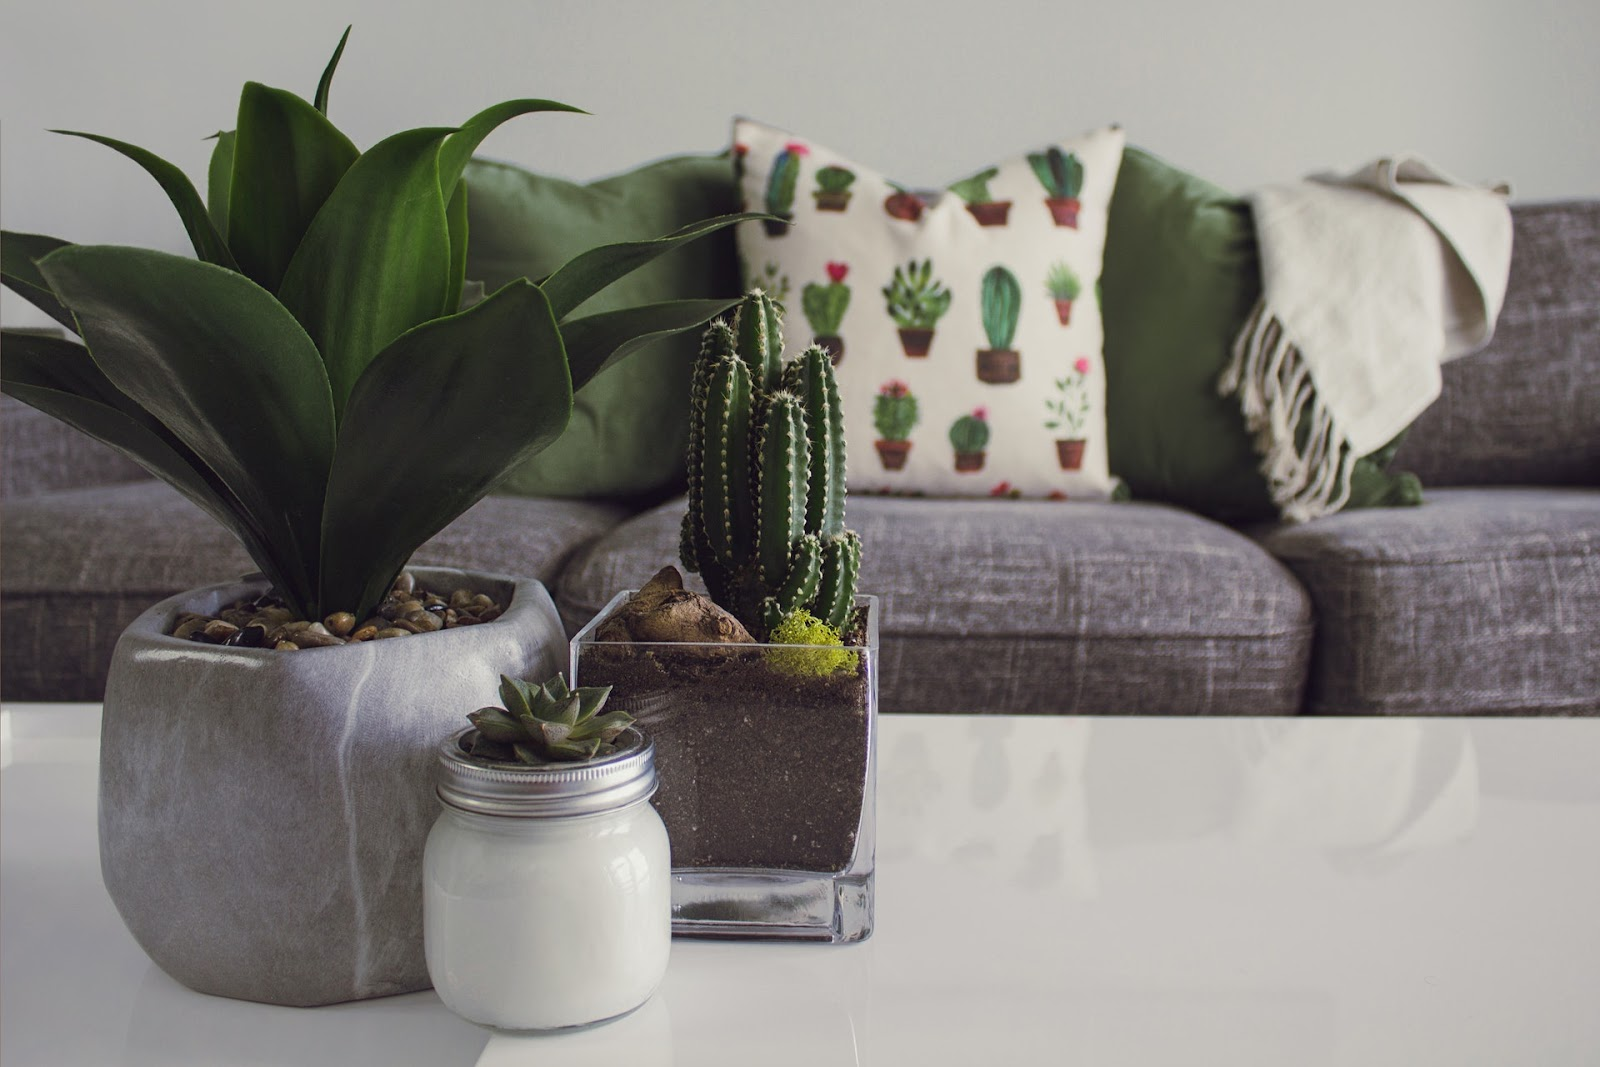 Three plants in pots on a coffee table in front of a sofa.